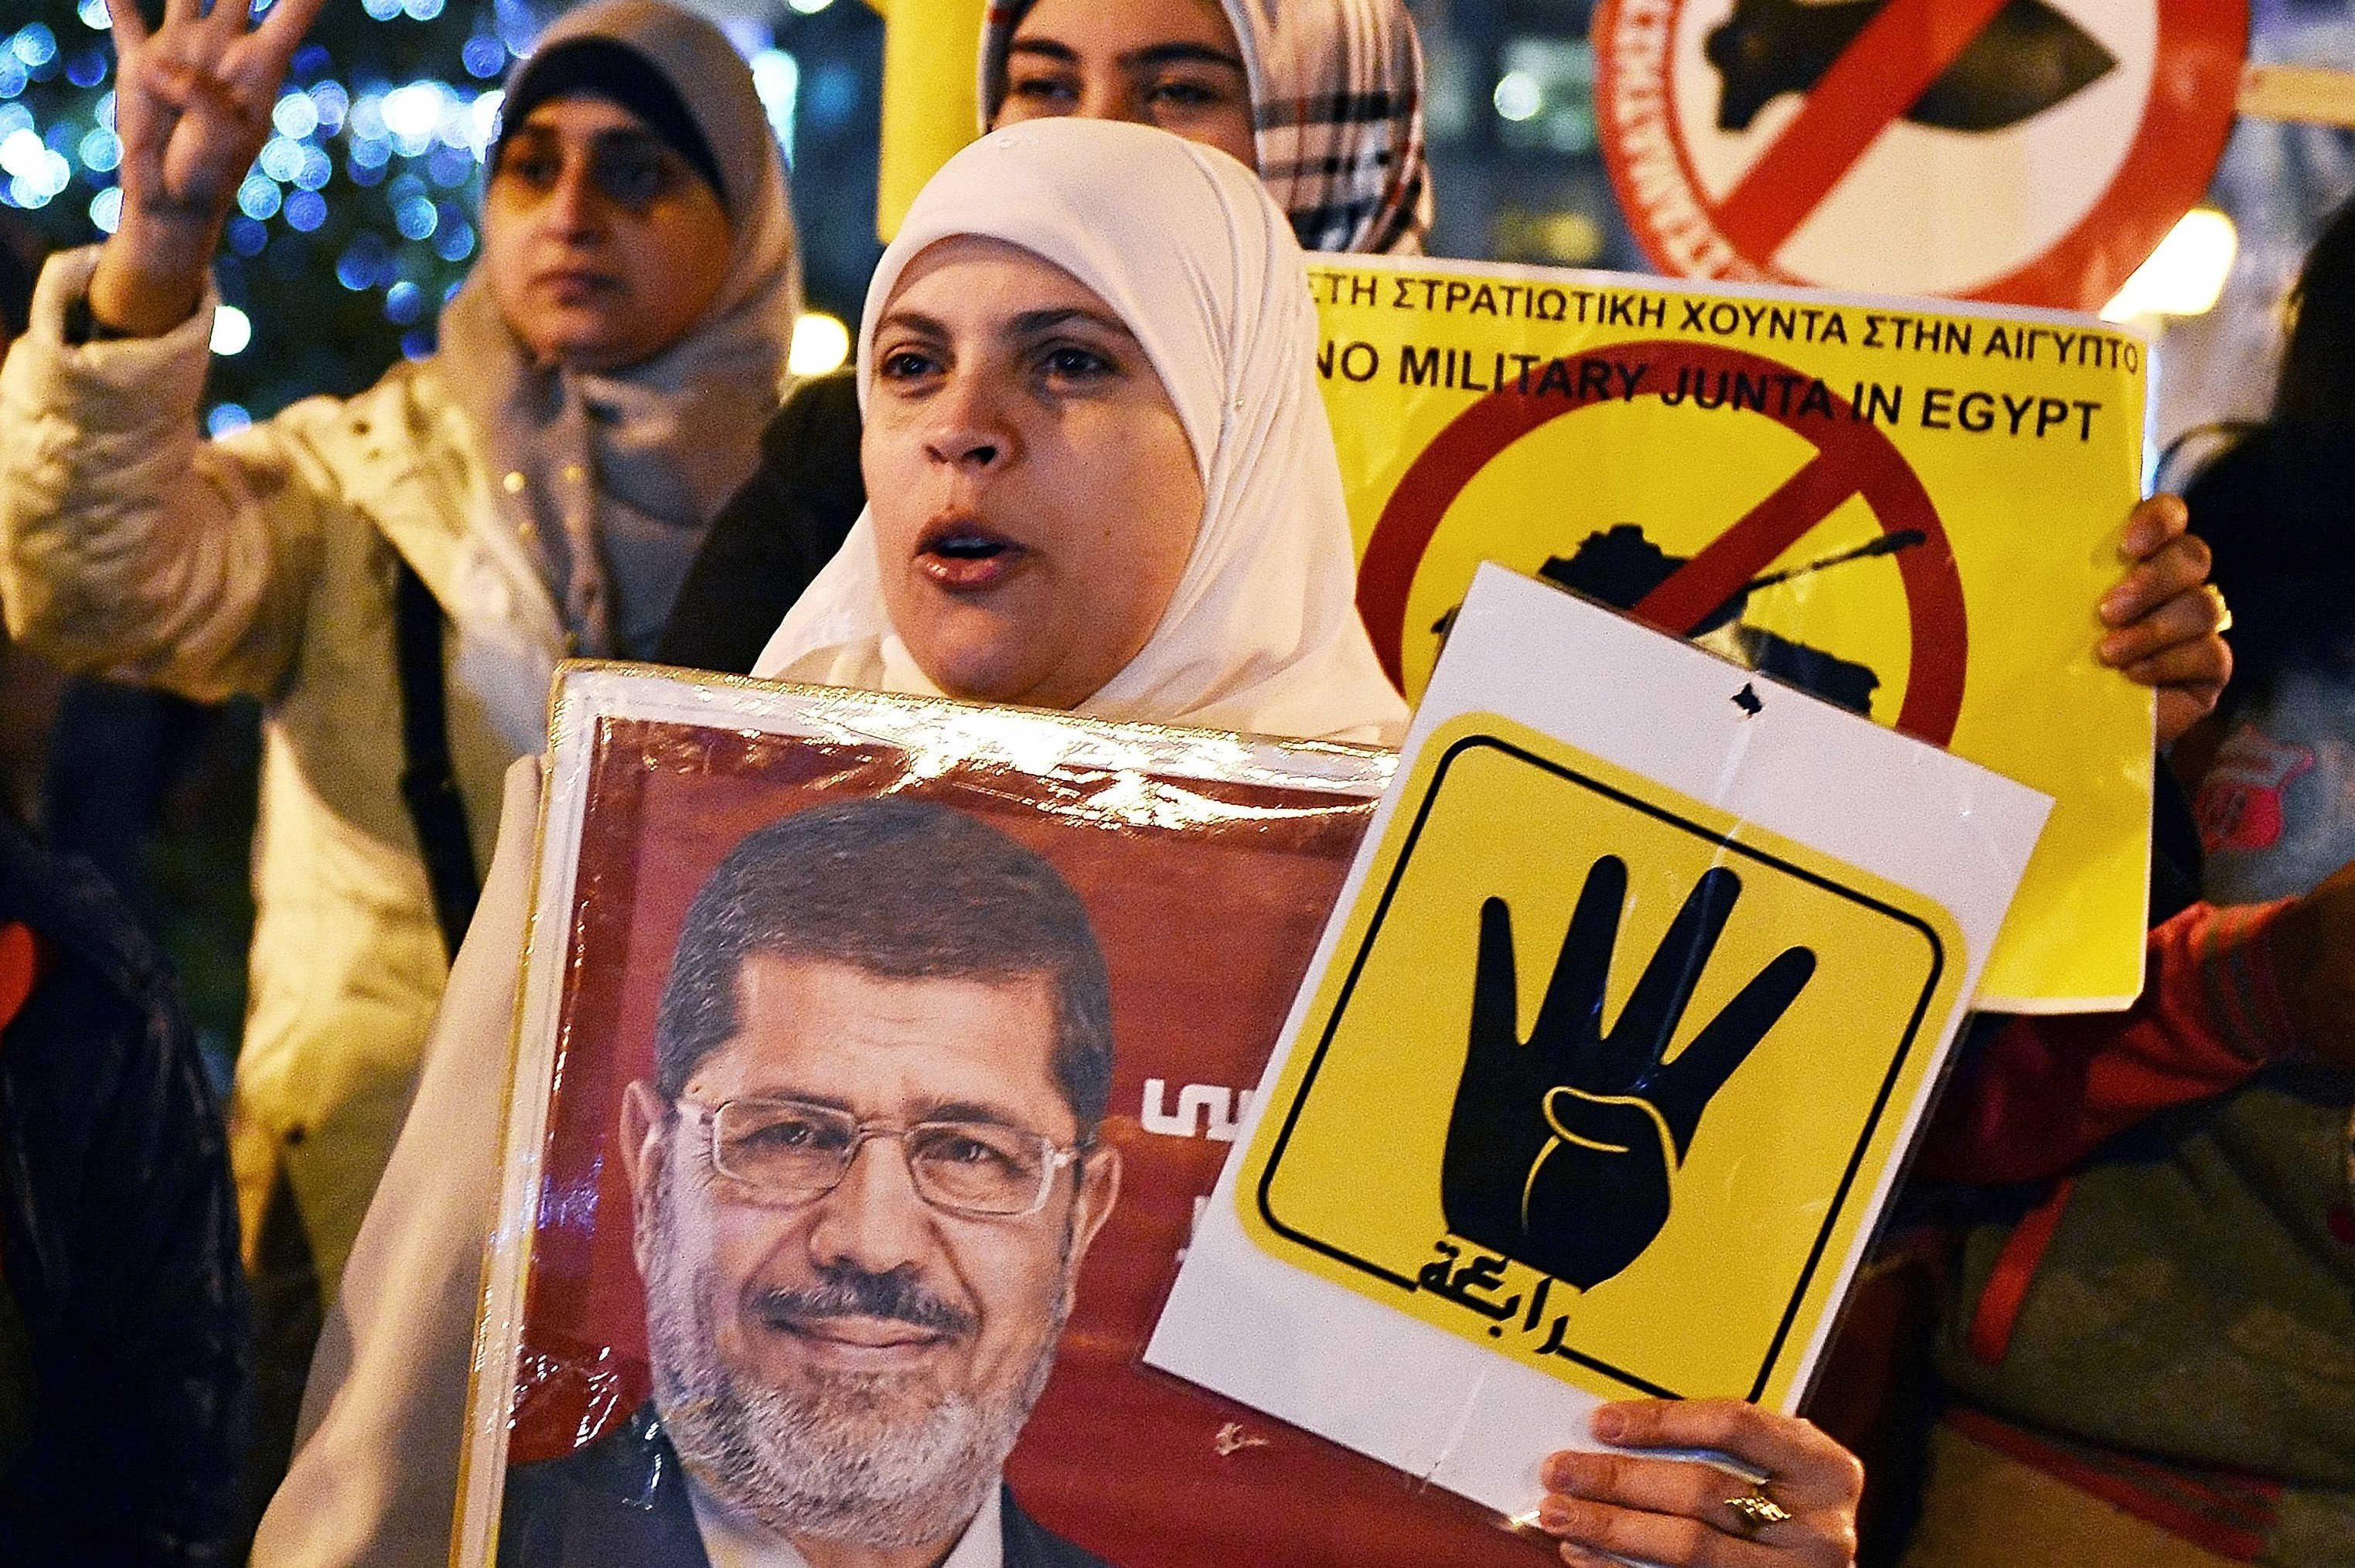 A woman holds up a banner of former Egyptian President Mohamed Morsi in anti-Sisi protest in Athenes in December 2015 (AFP)